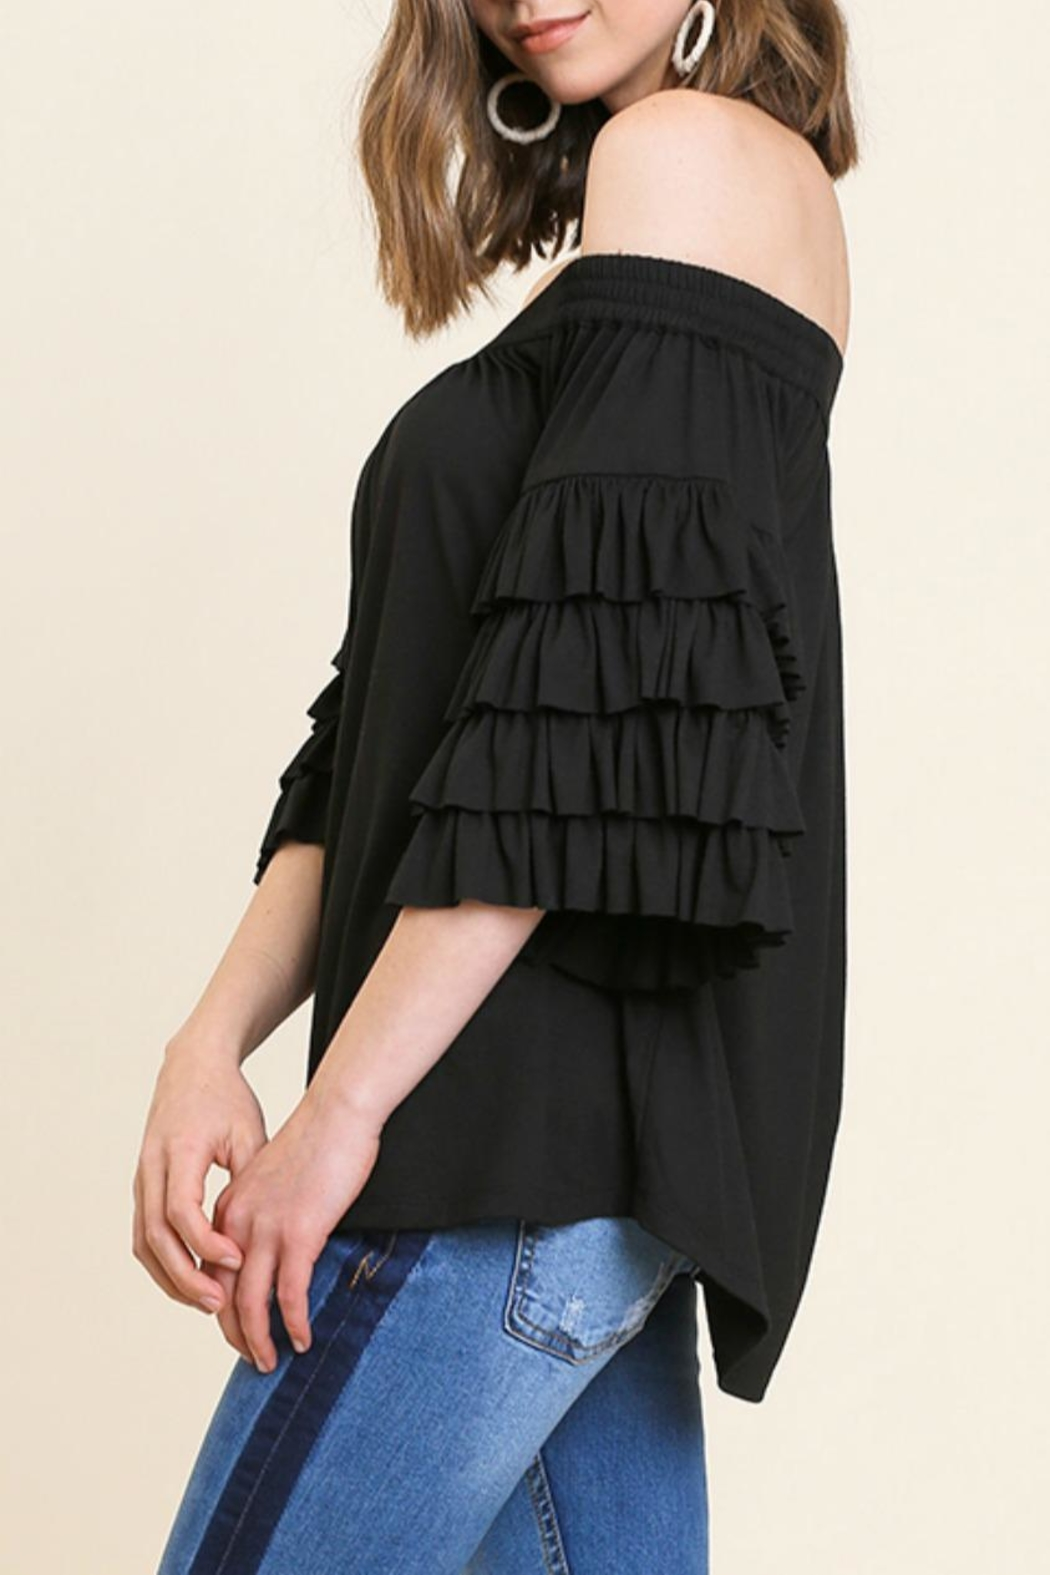 Umgee USA Ots Ruffle-Sleeve Top - Front Full Image